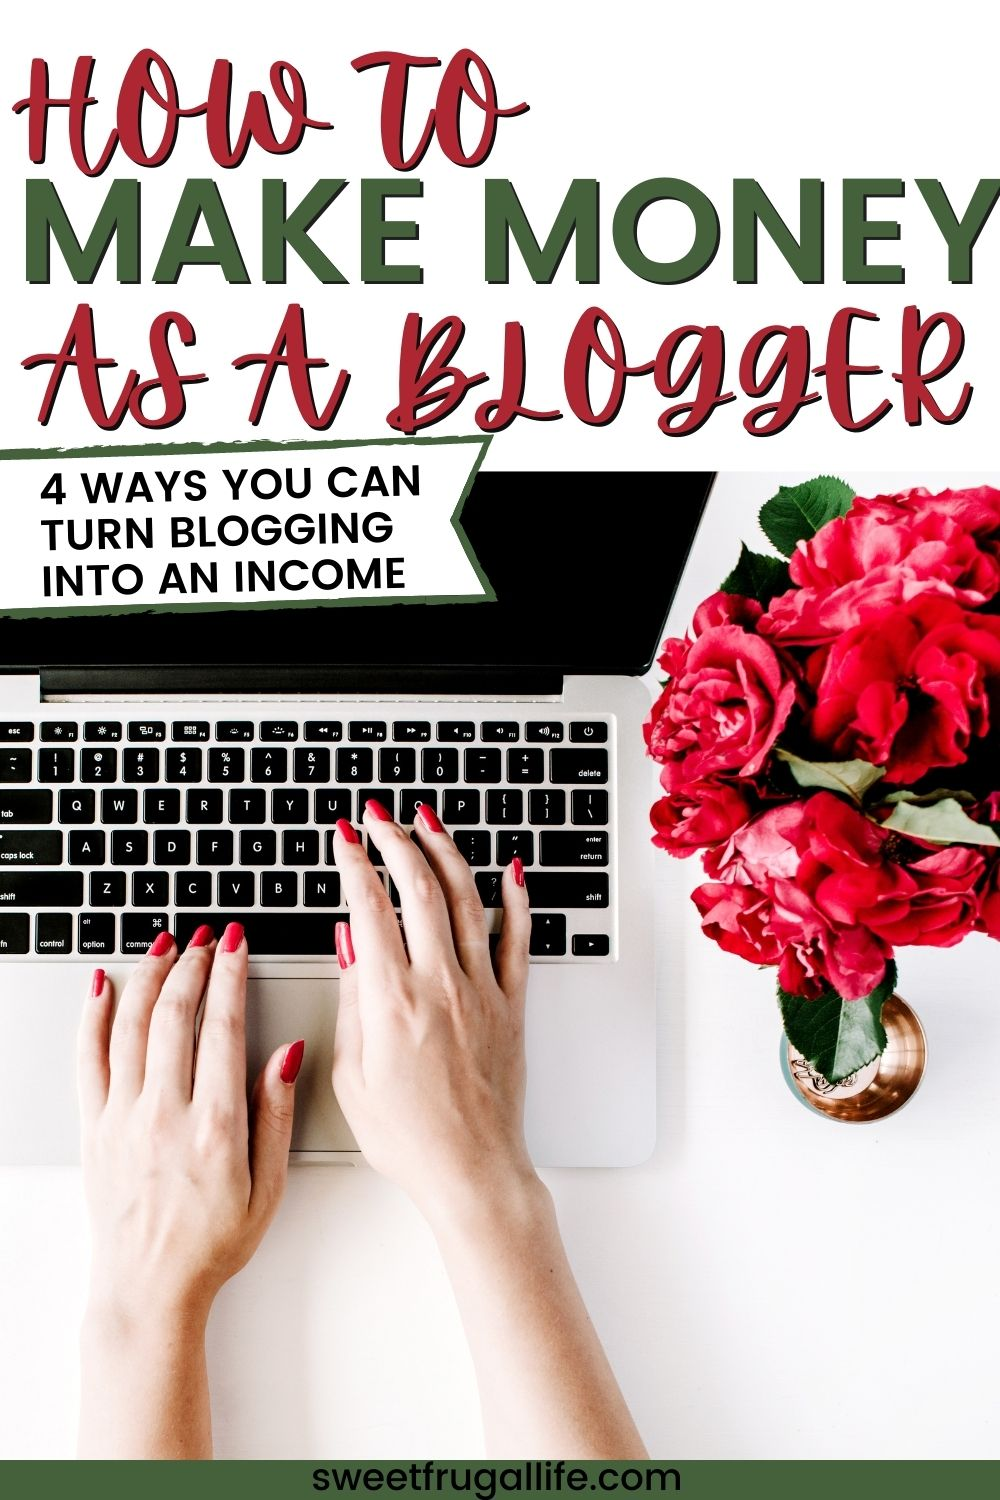 make money as a blogger - how do bloggers earn money